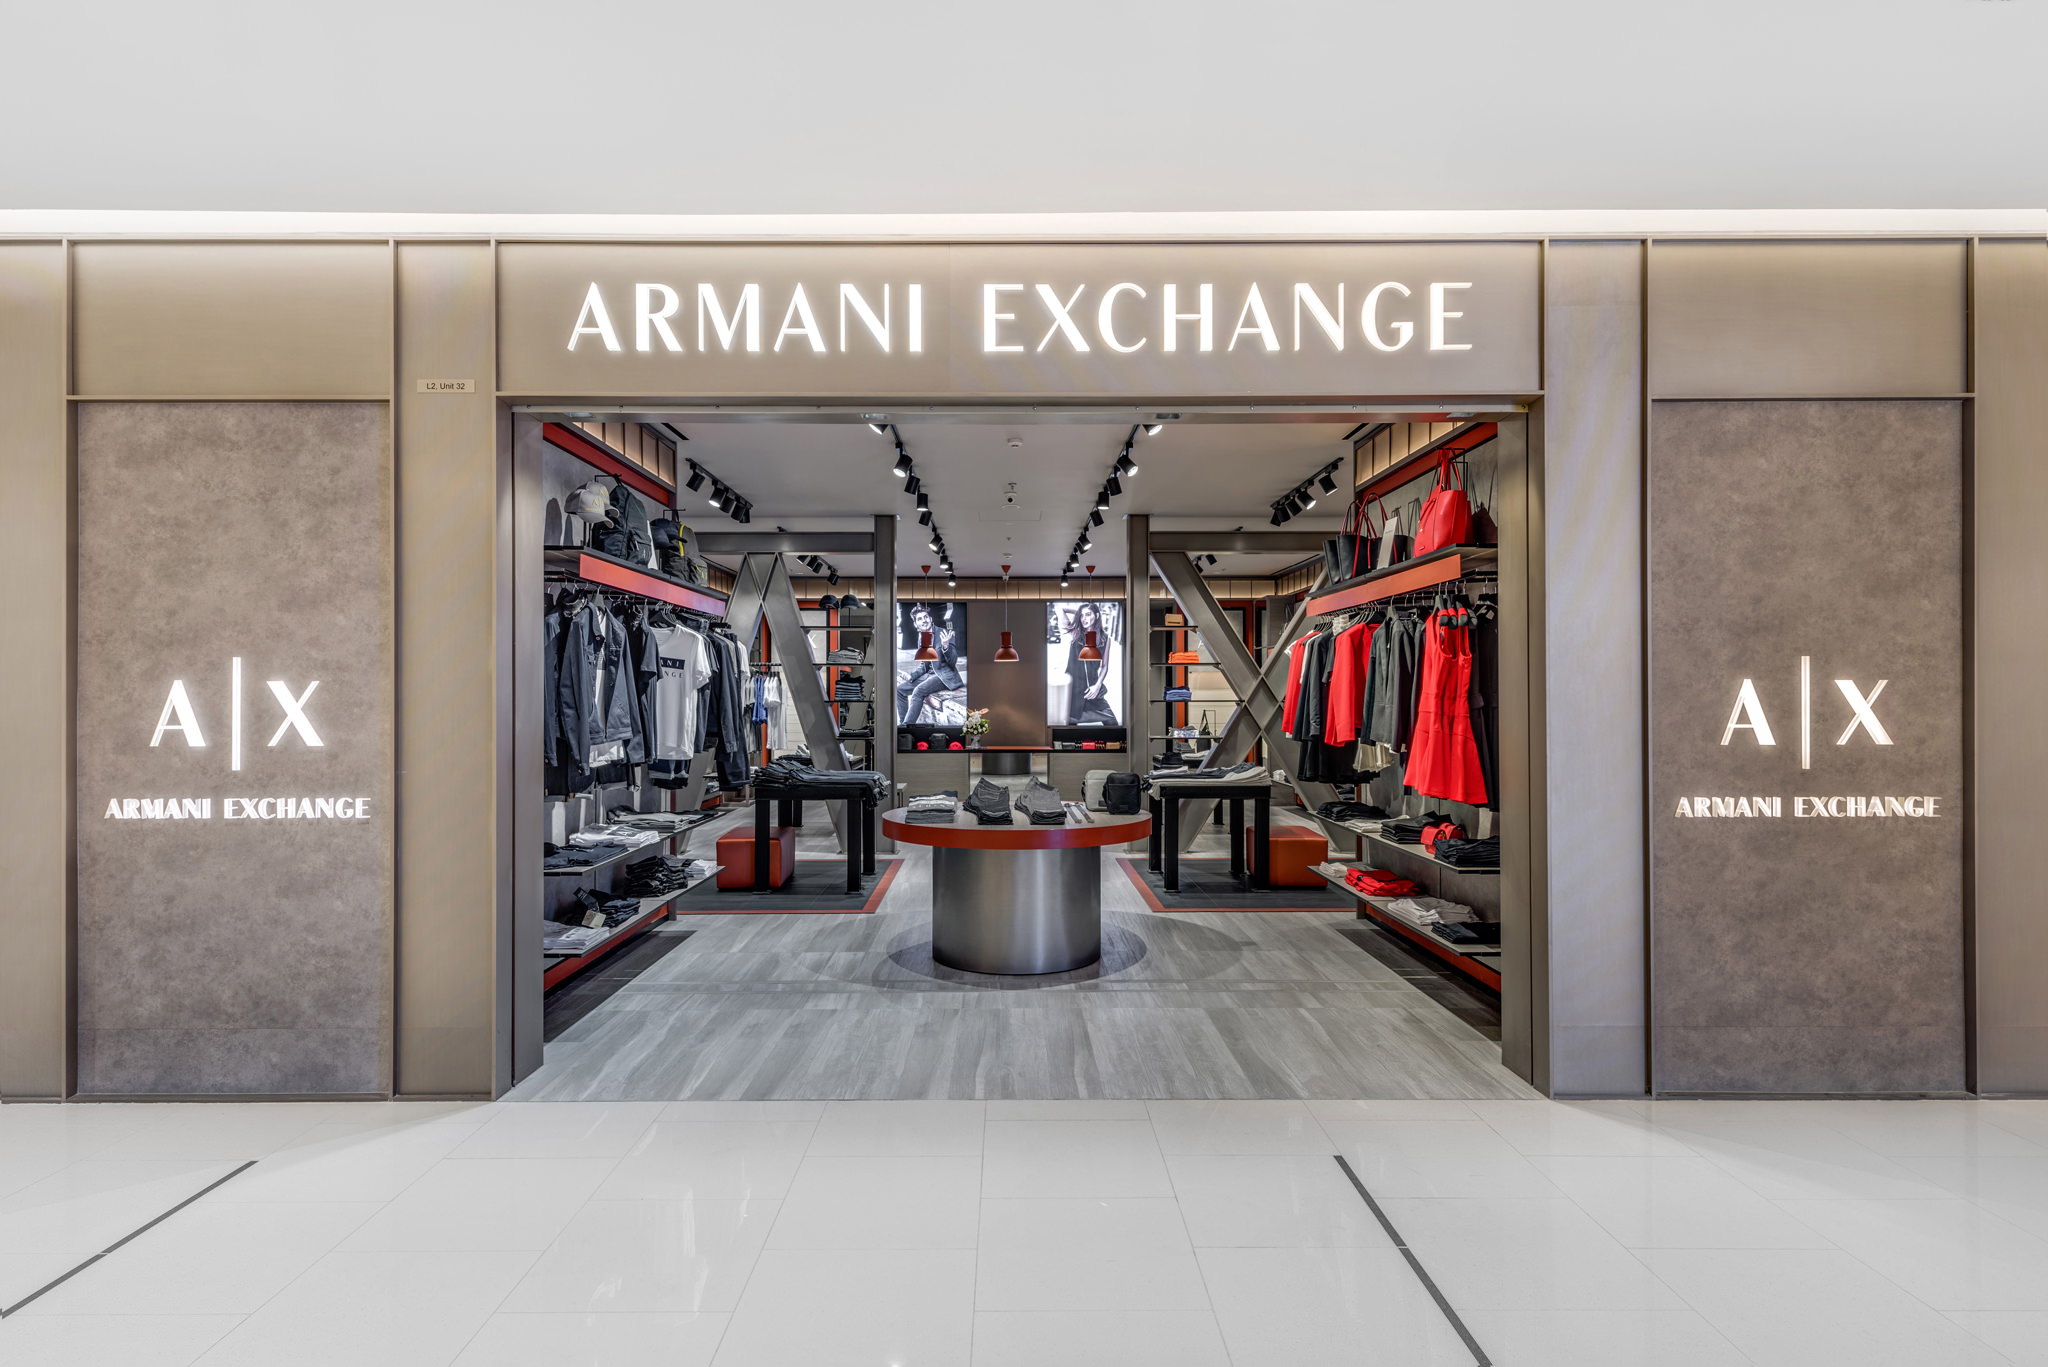 20160801 - Armani Exchange - HCM - Commercial - Interior - Store - Retouch 0001.jpg